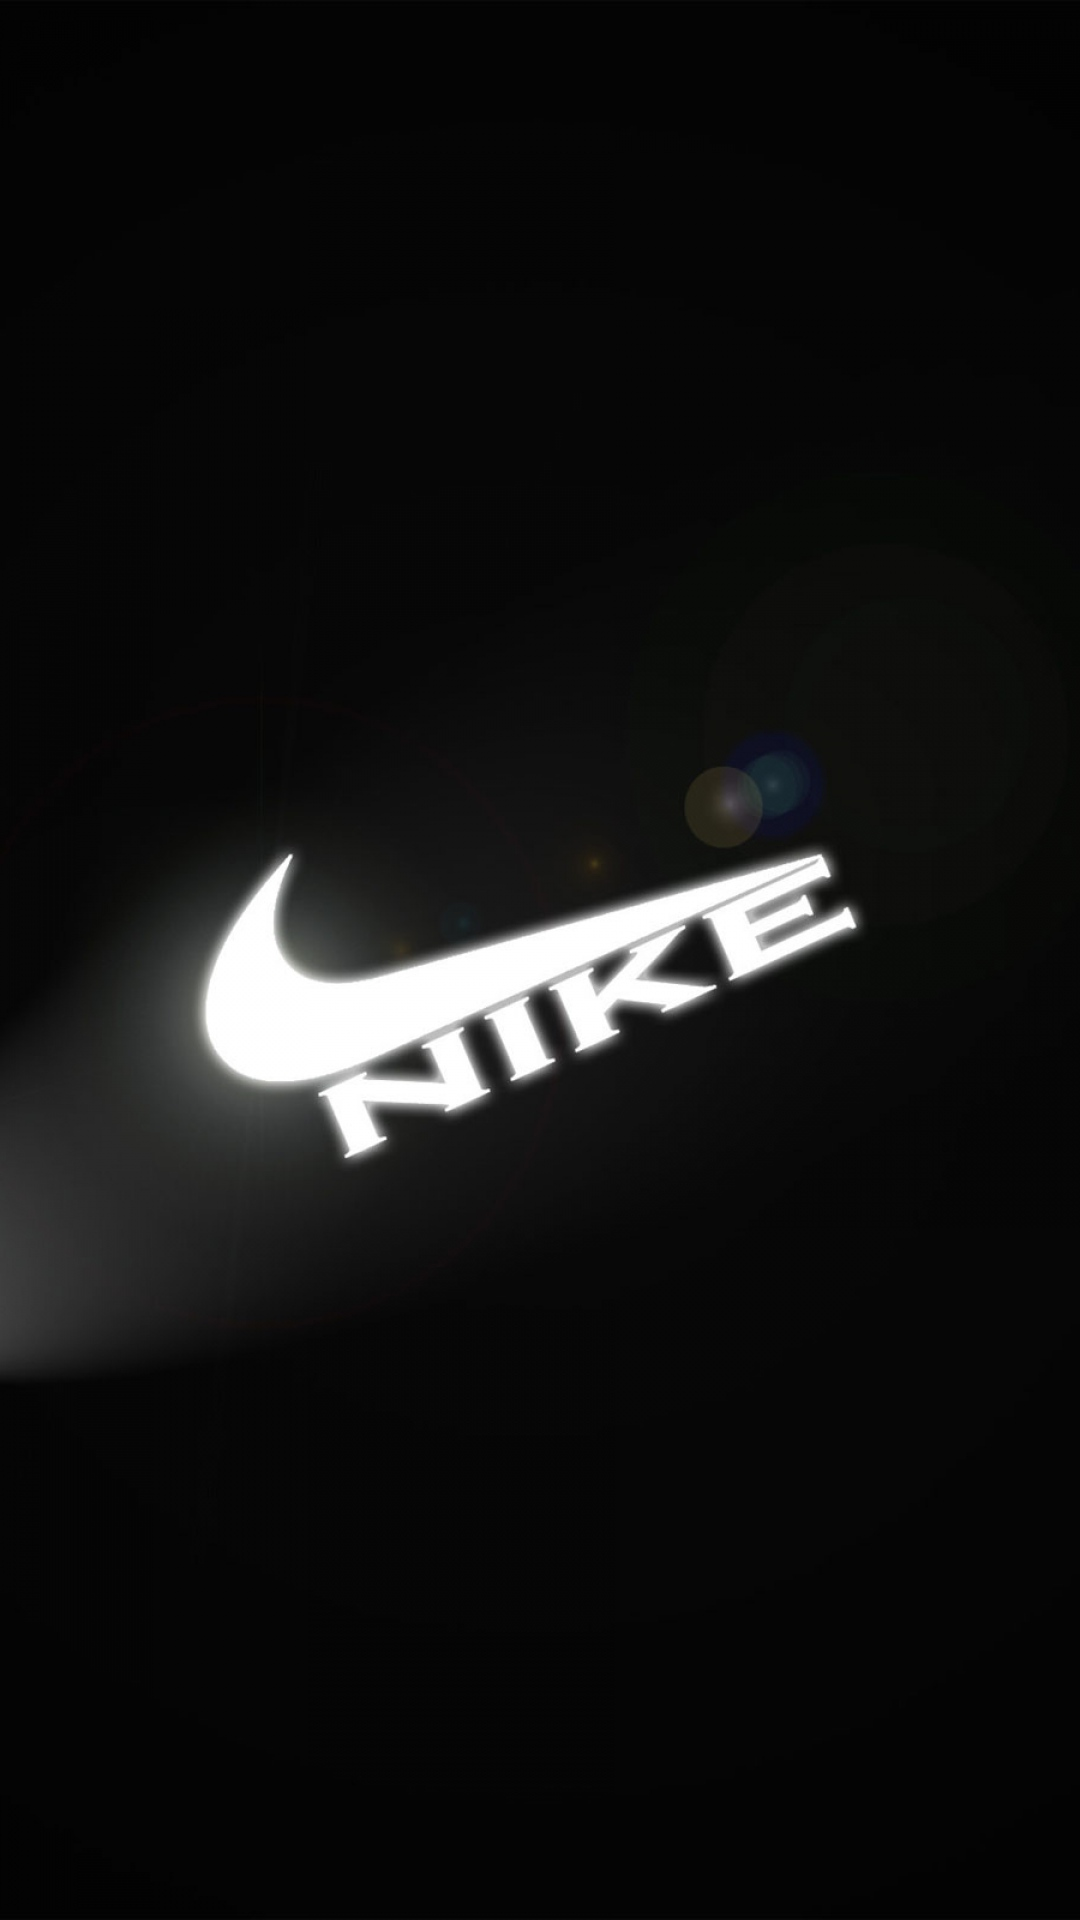 Wallpaper Wiki Free Nike Background For Iphone Download Pic